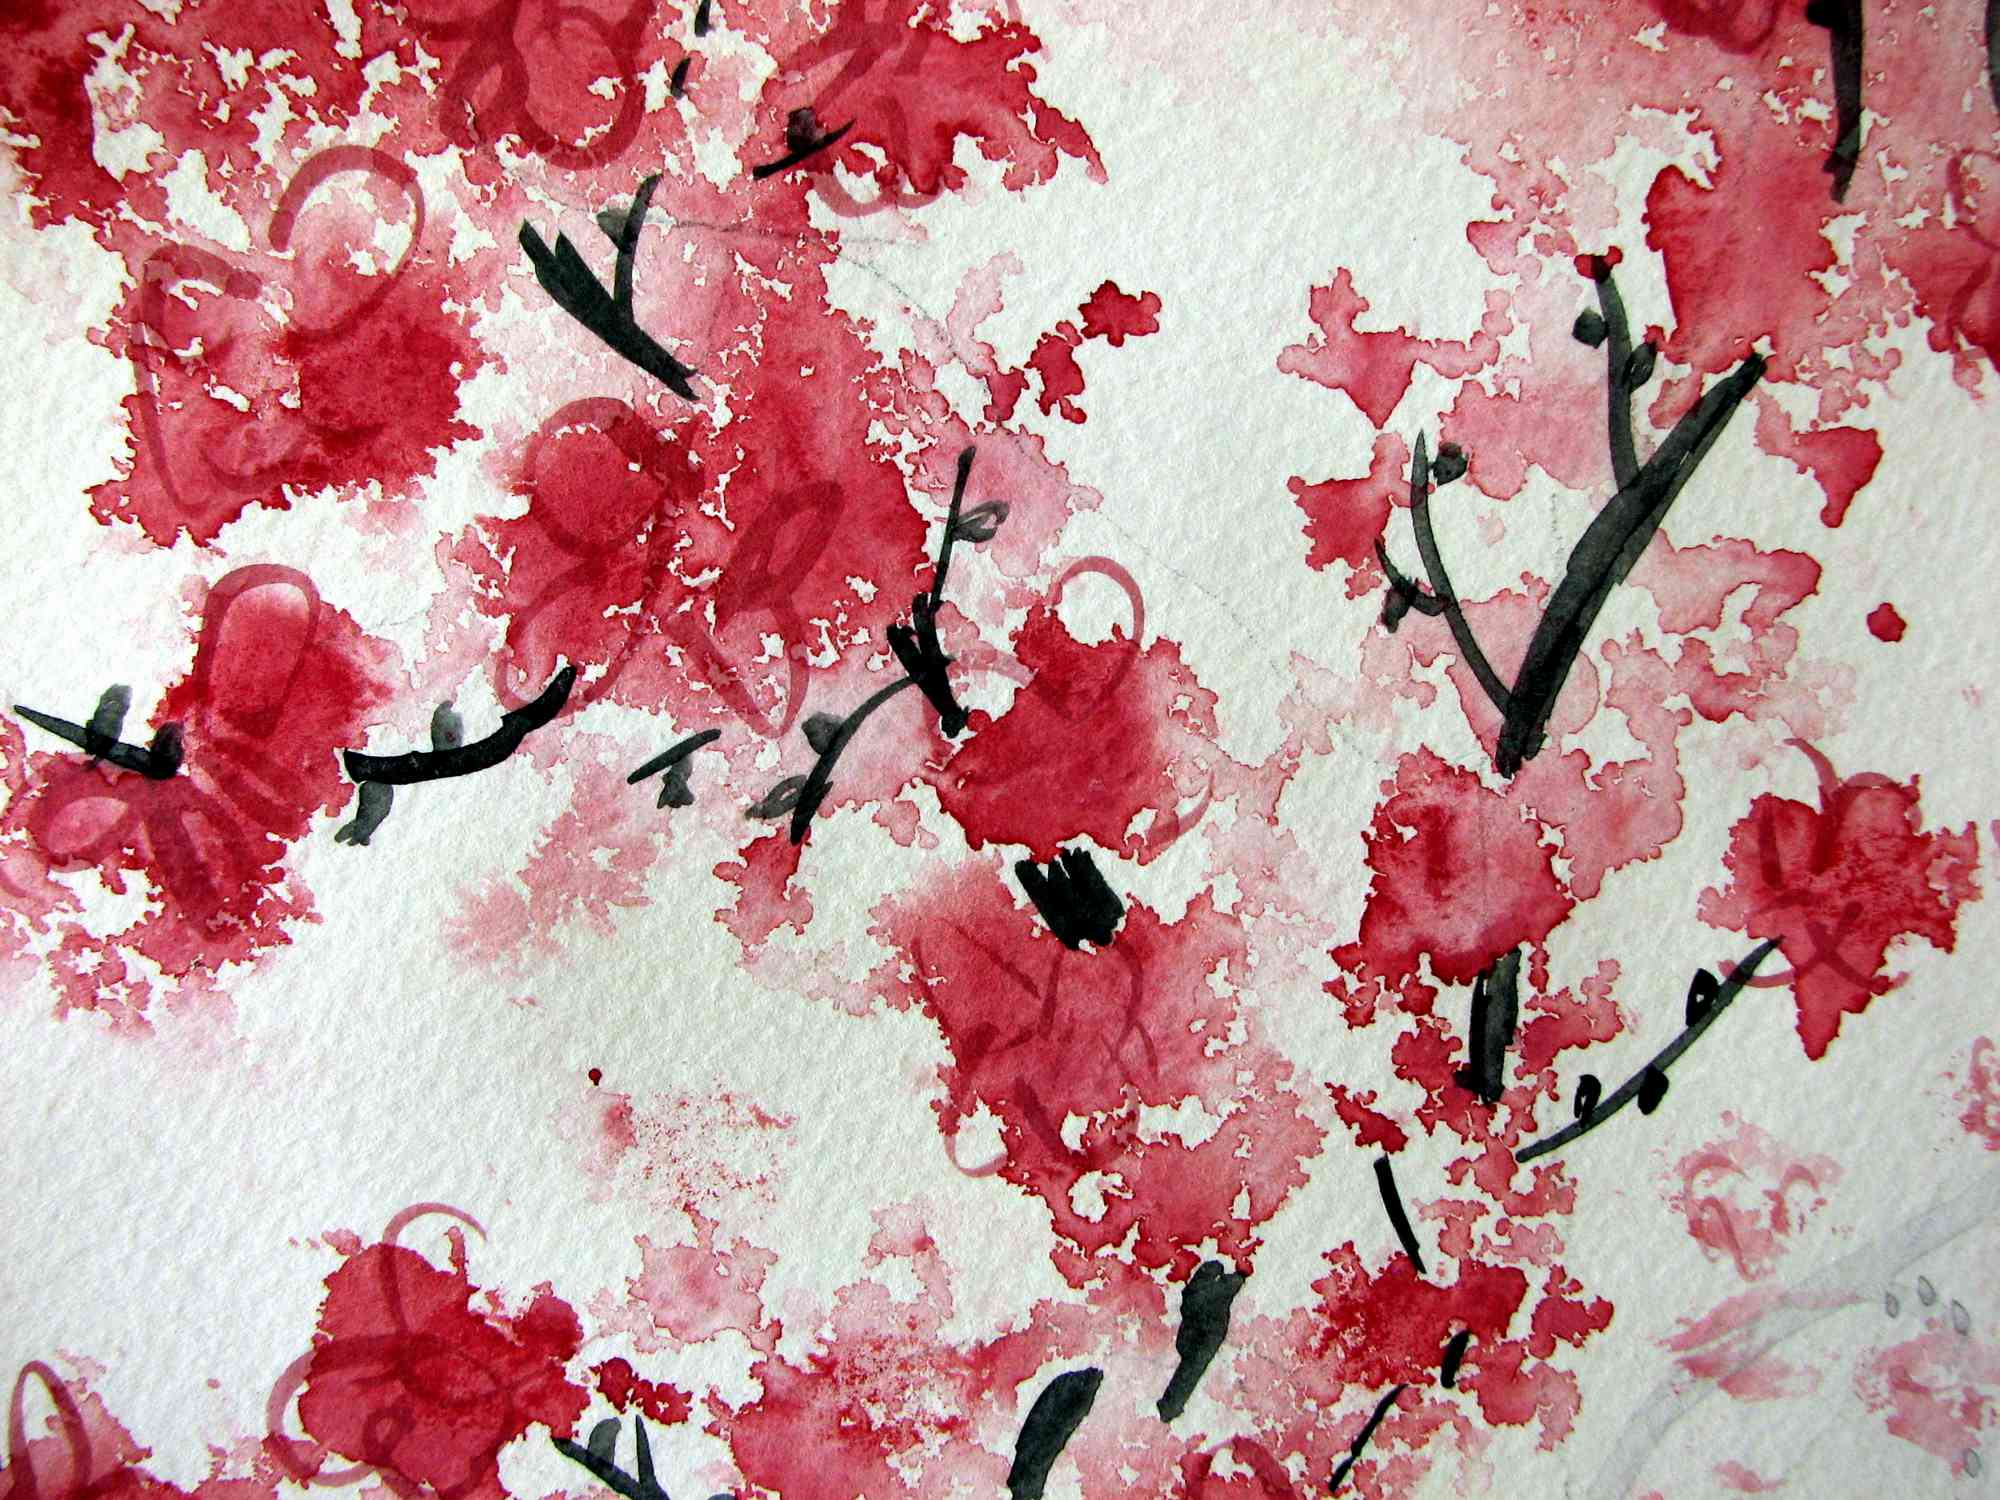 2000x1500 Red Cherry Blossom Painting Hd Wallpaper Background Images 1920x1200